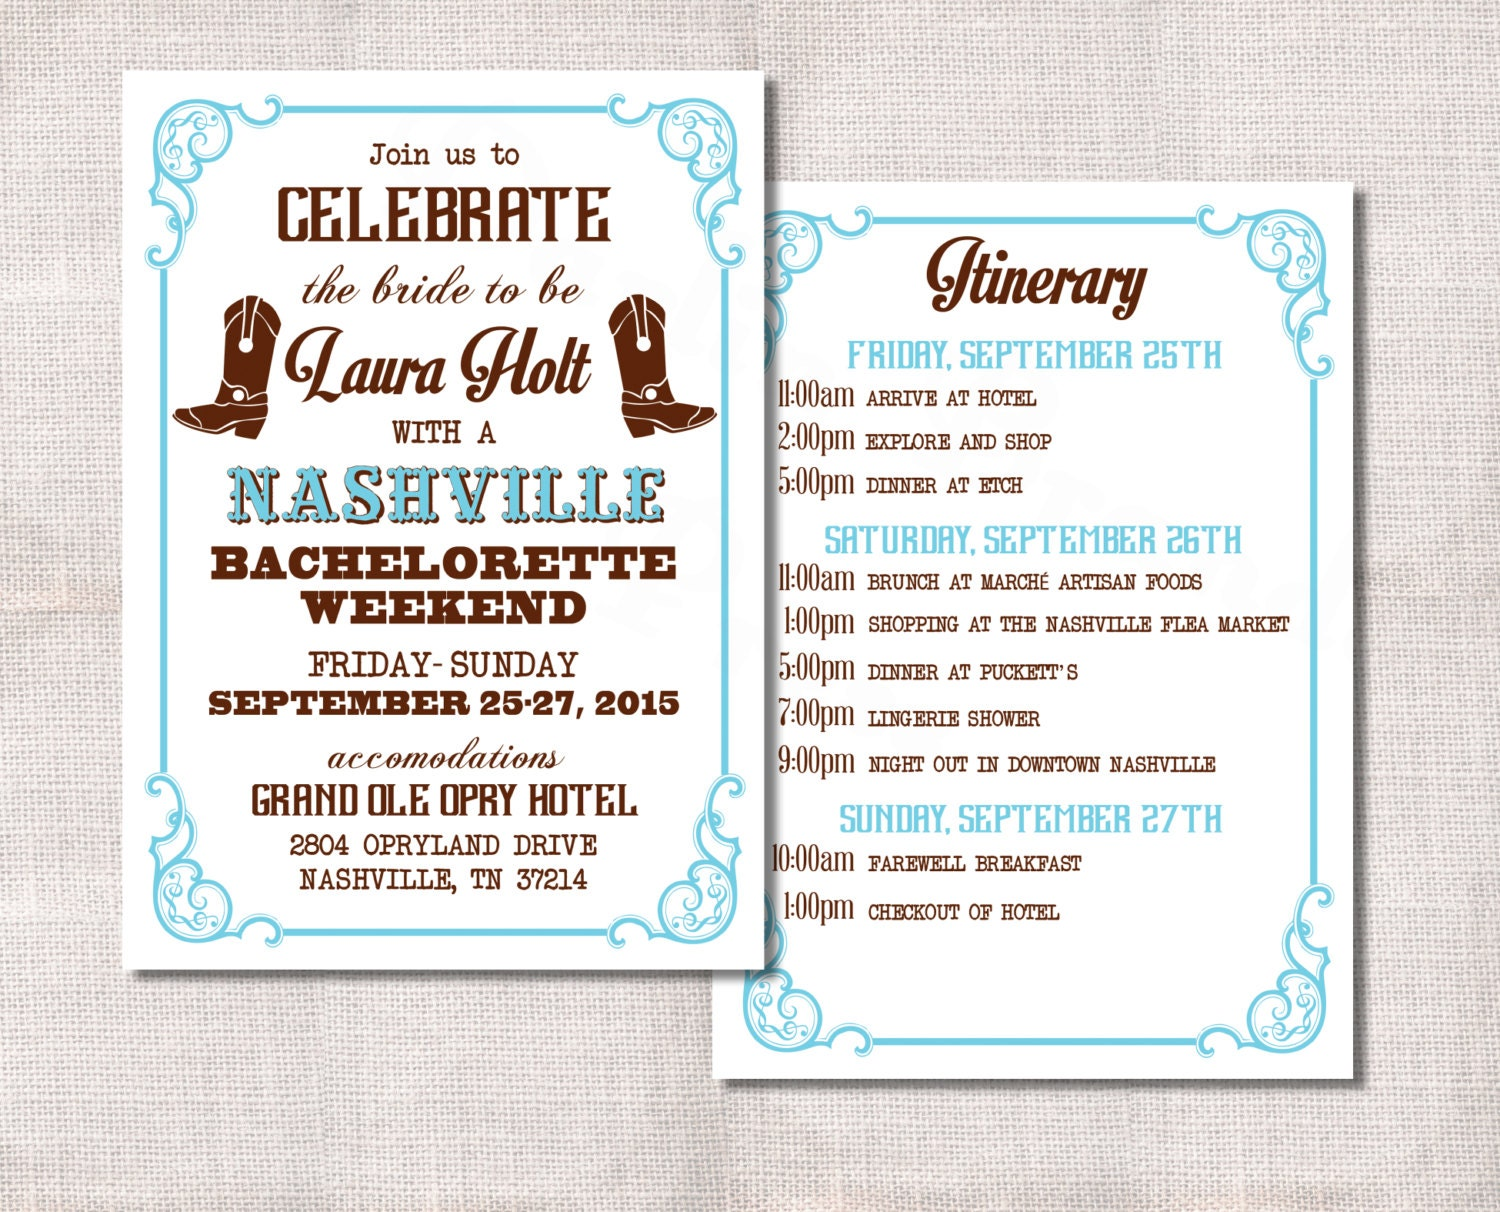 Bachelorette Party Weekend invitation and itinerary custom